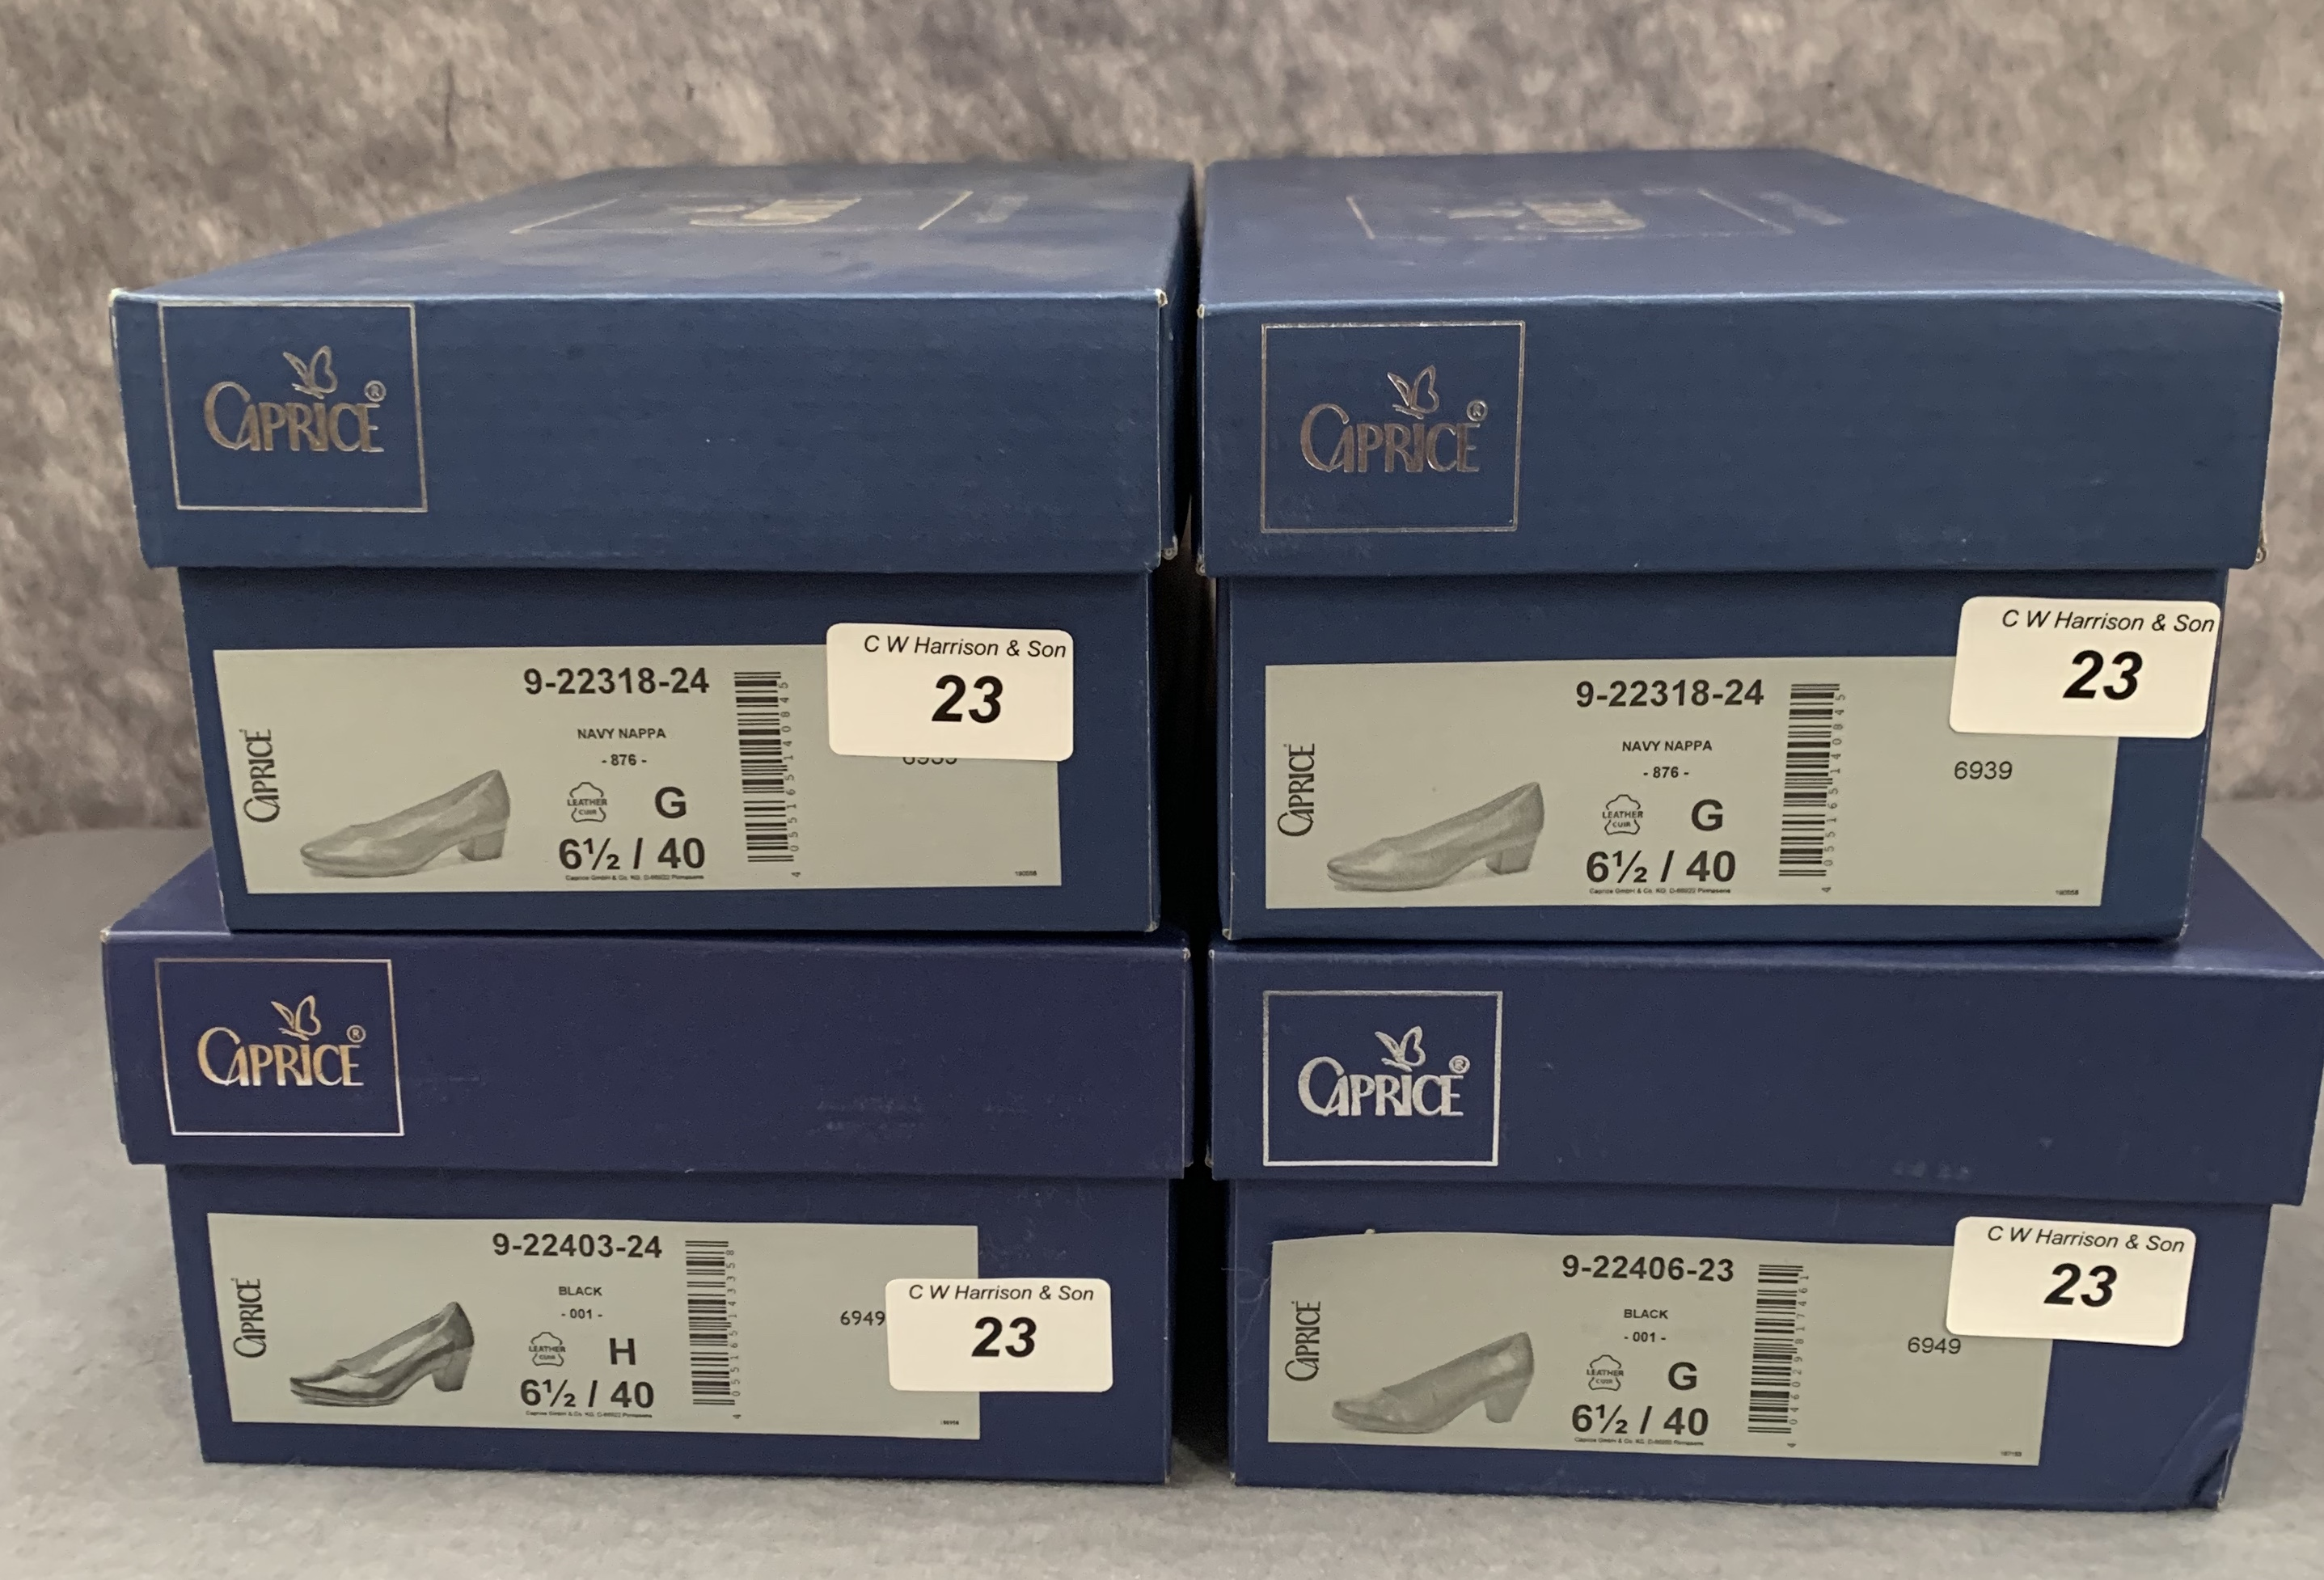 Four pairs of Caprice ladies shoes in black (2) and ocean (2), various styles, size 6½, - Image 2 of 2